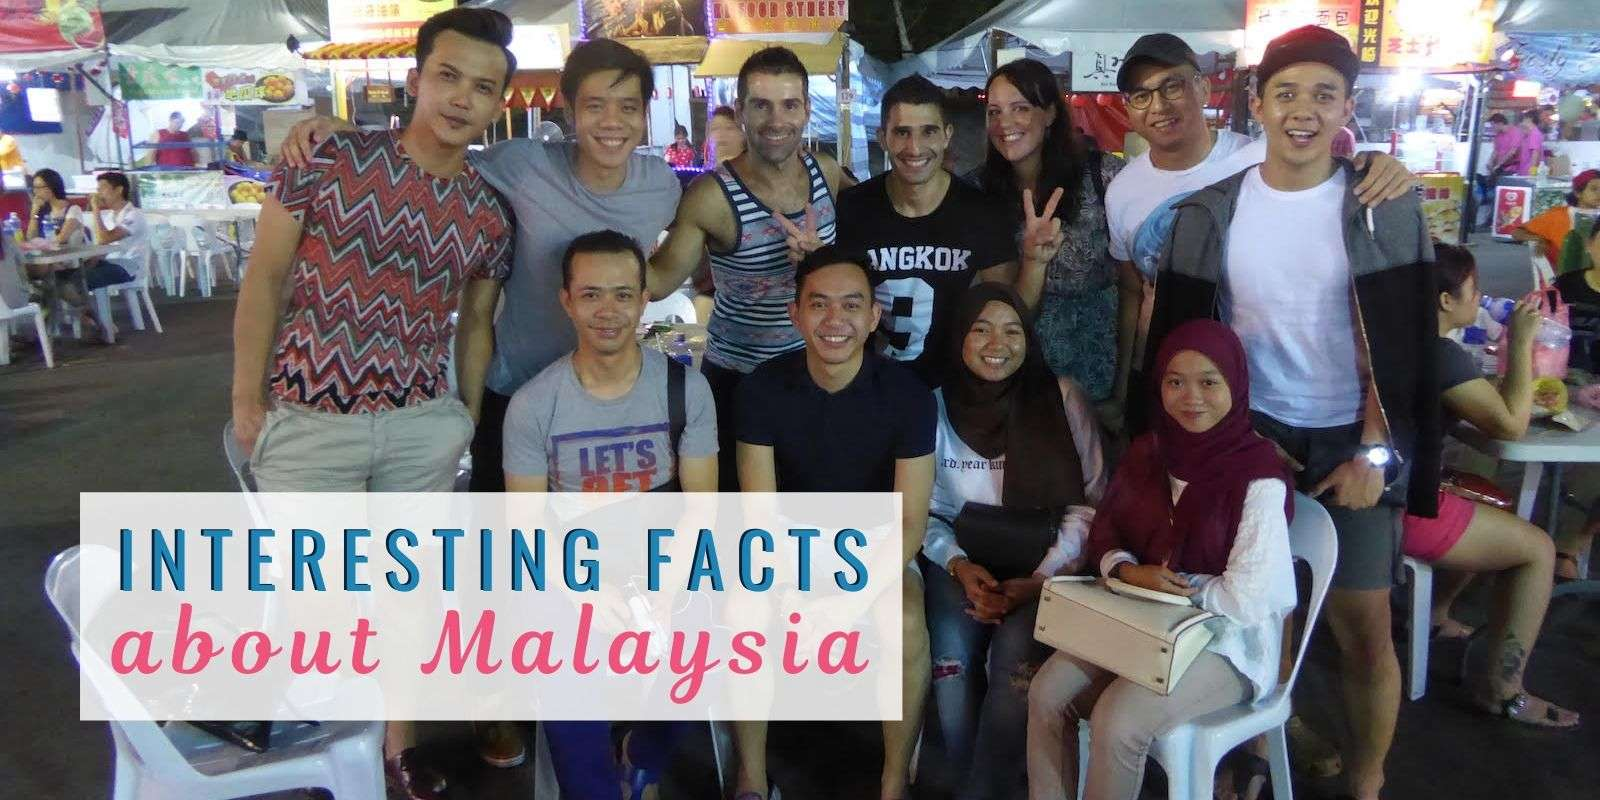 10 interesting facts about Malaysia we learnt during our big trip there